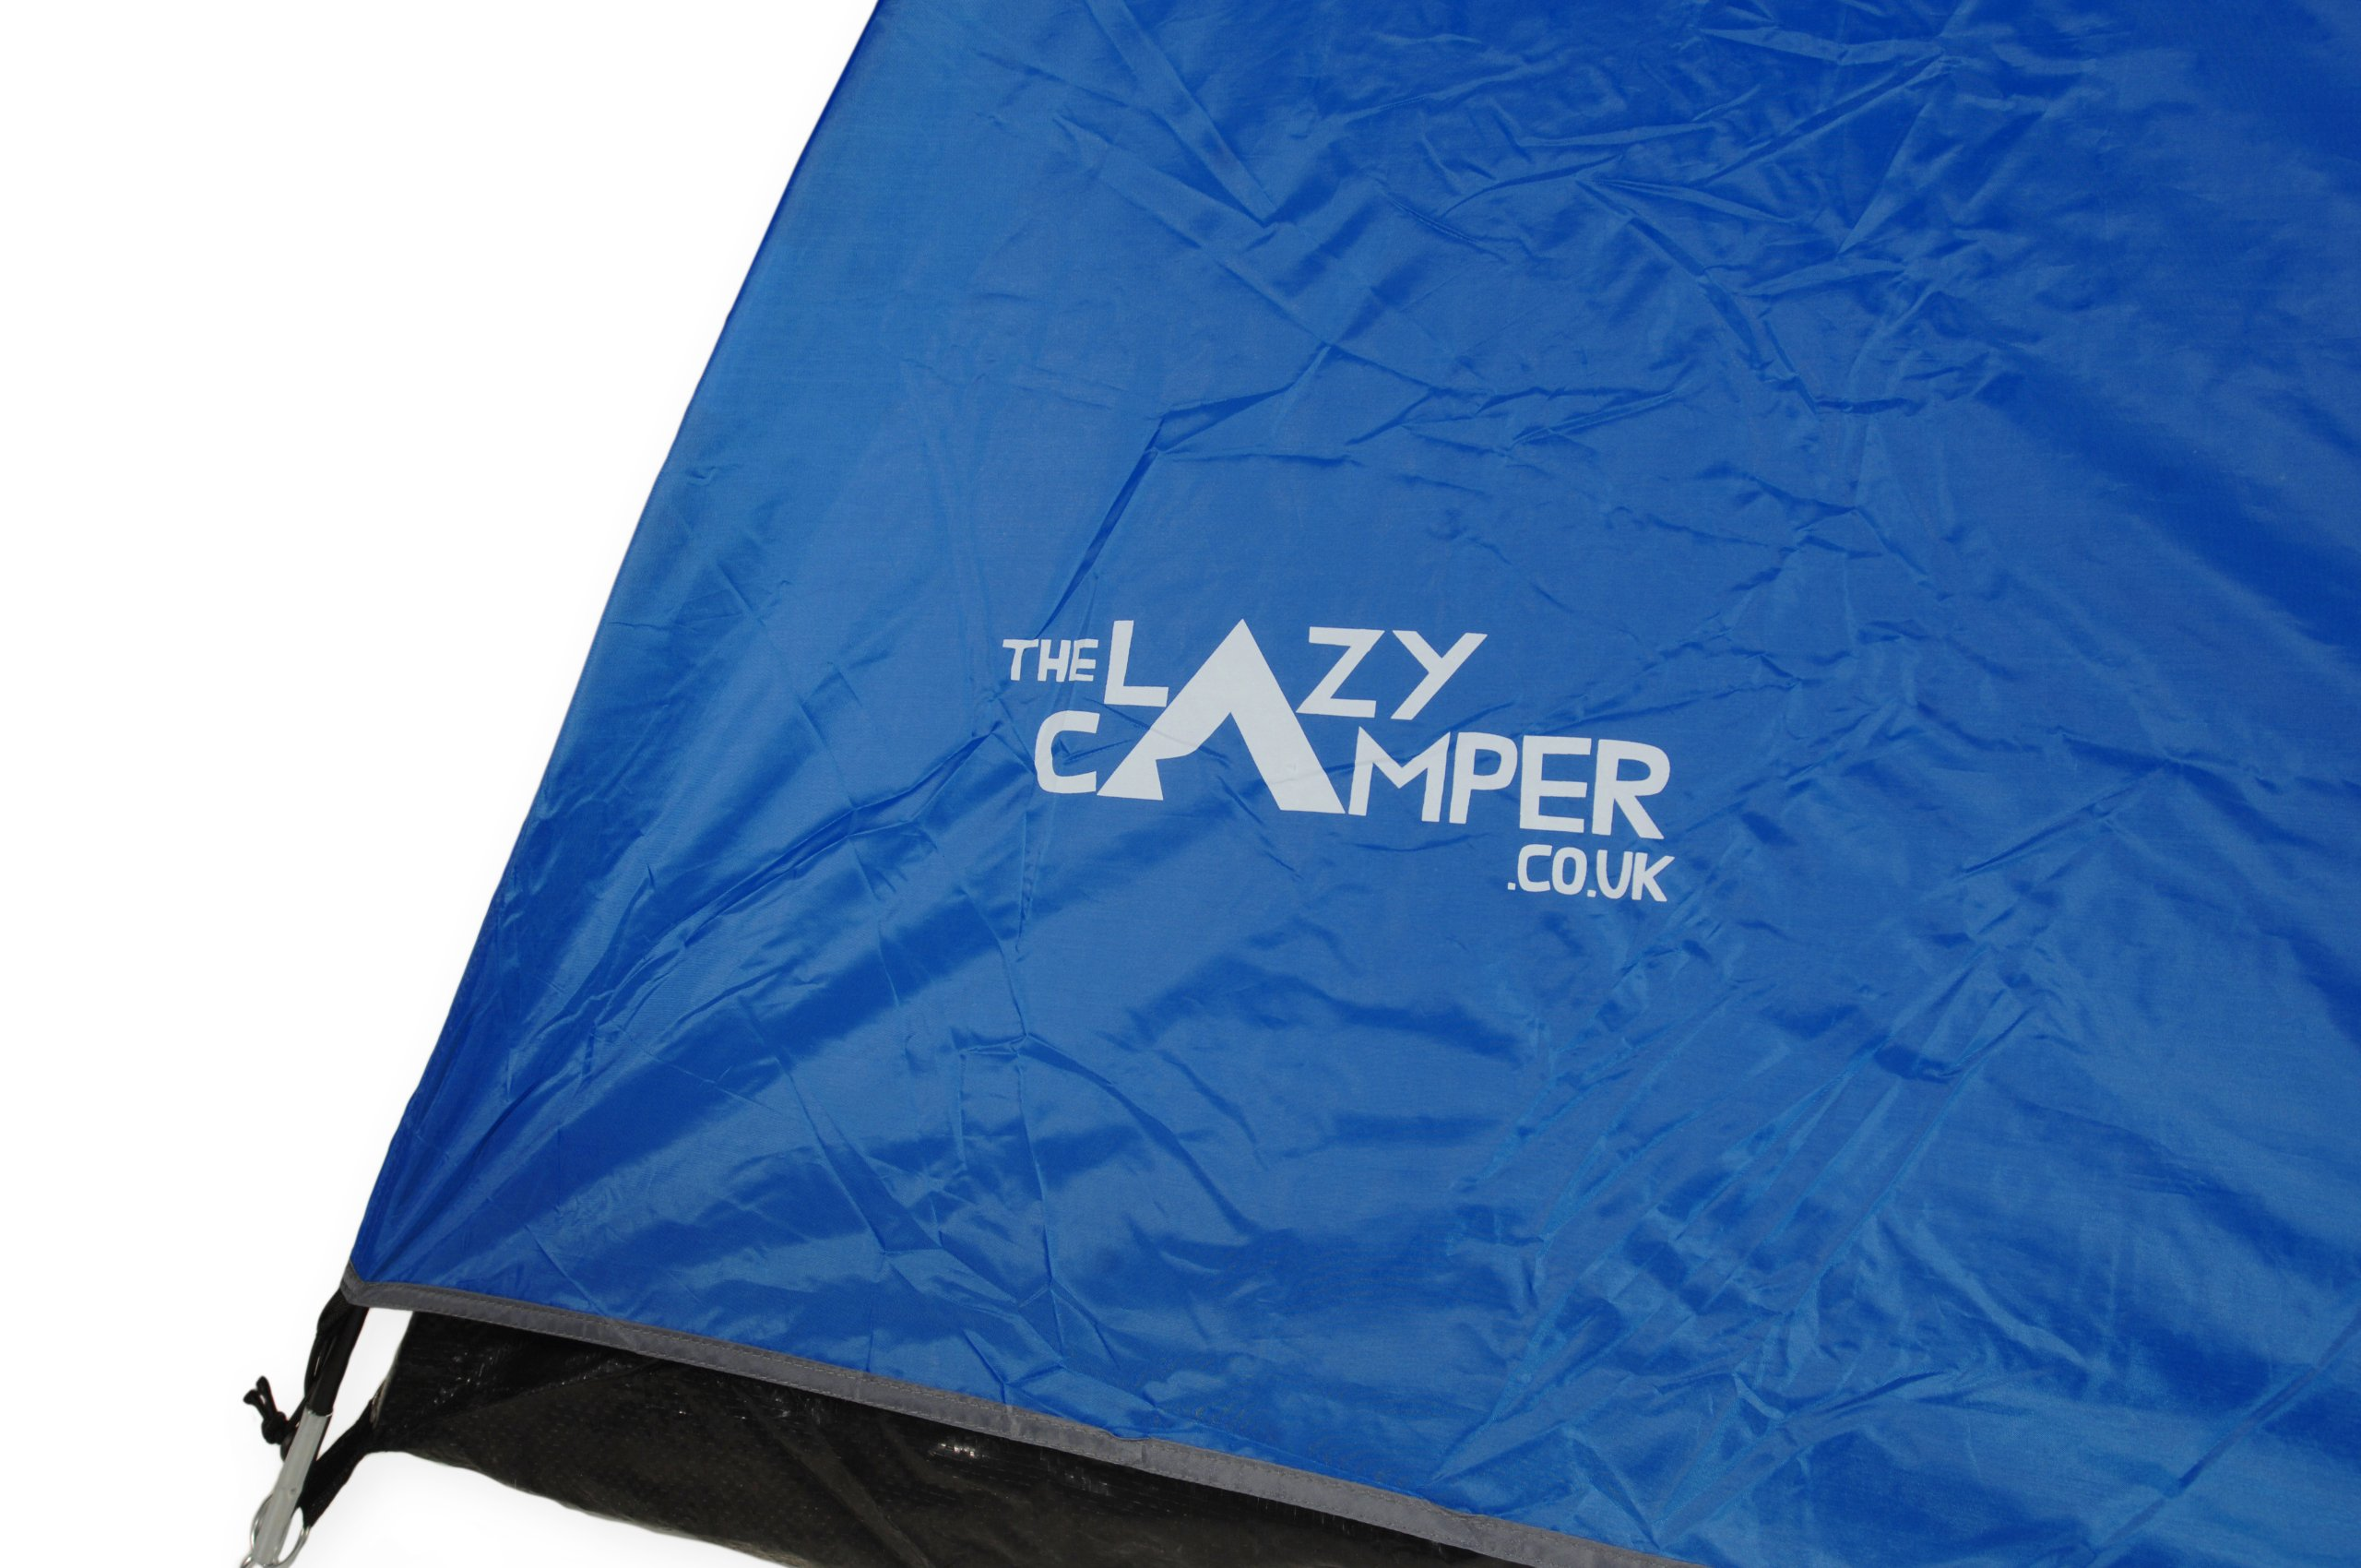 Large Tent 4 5 Person by the lazy camper great for